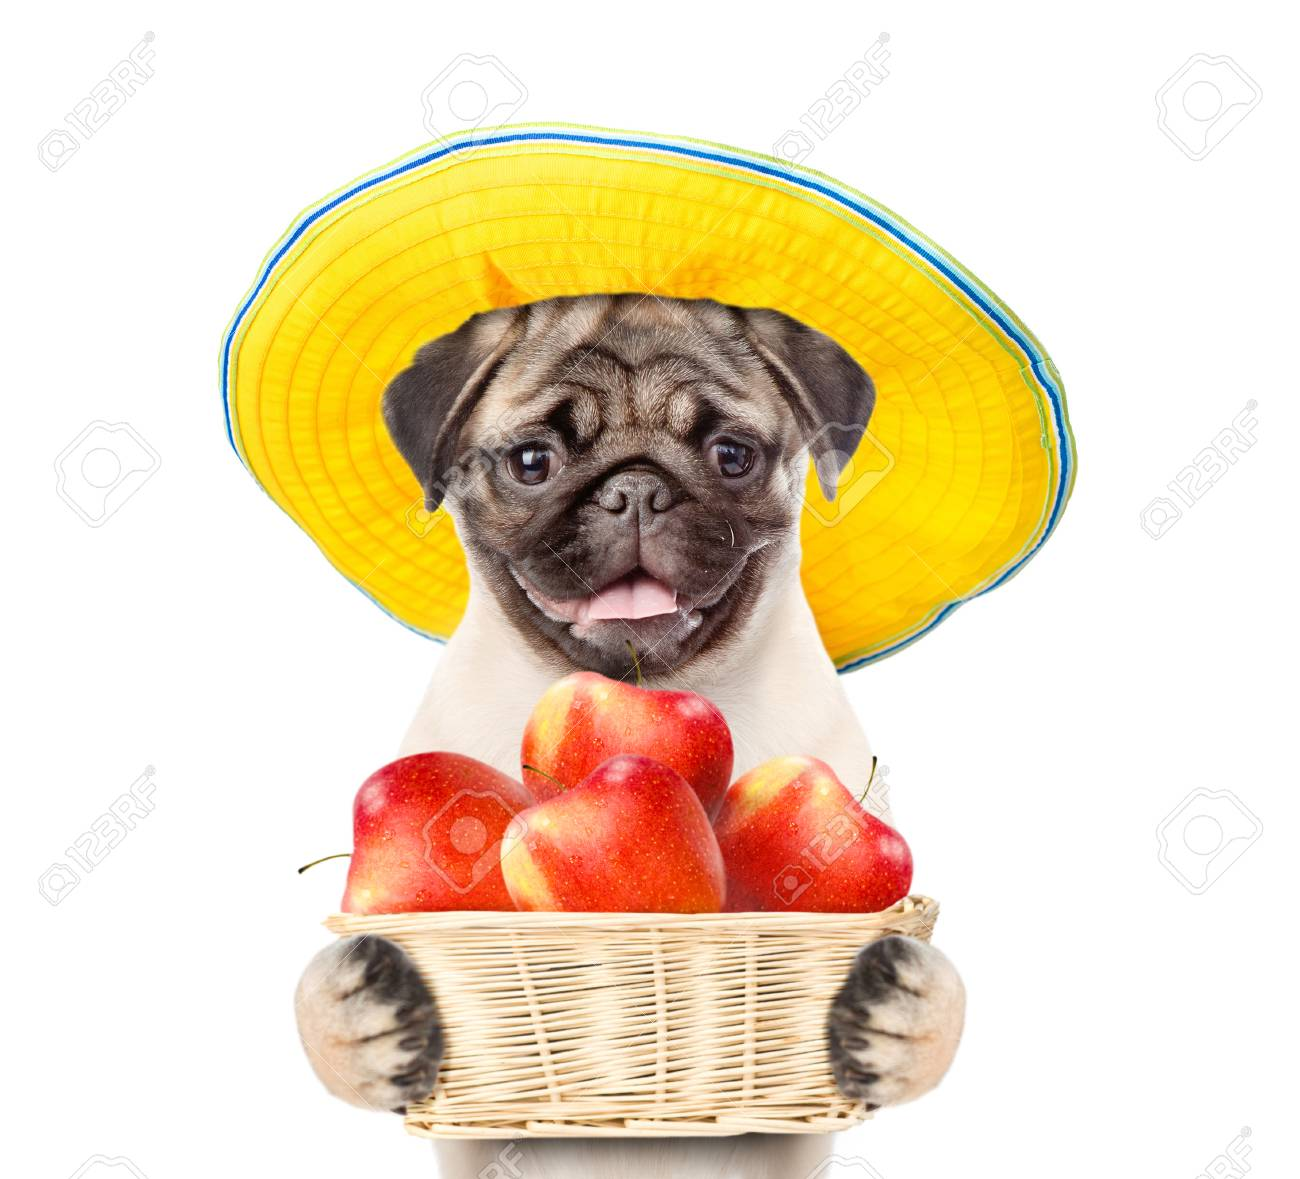 Funny Puppy In Summer Hat Holding A Basket Of Apples Isolated